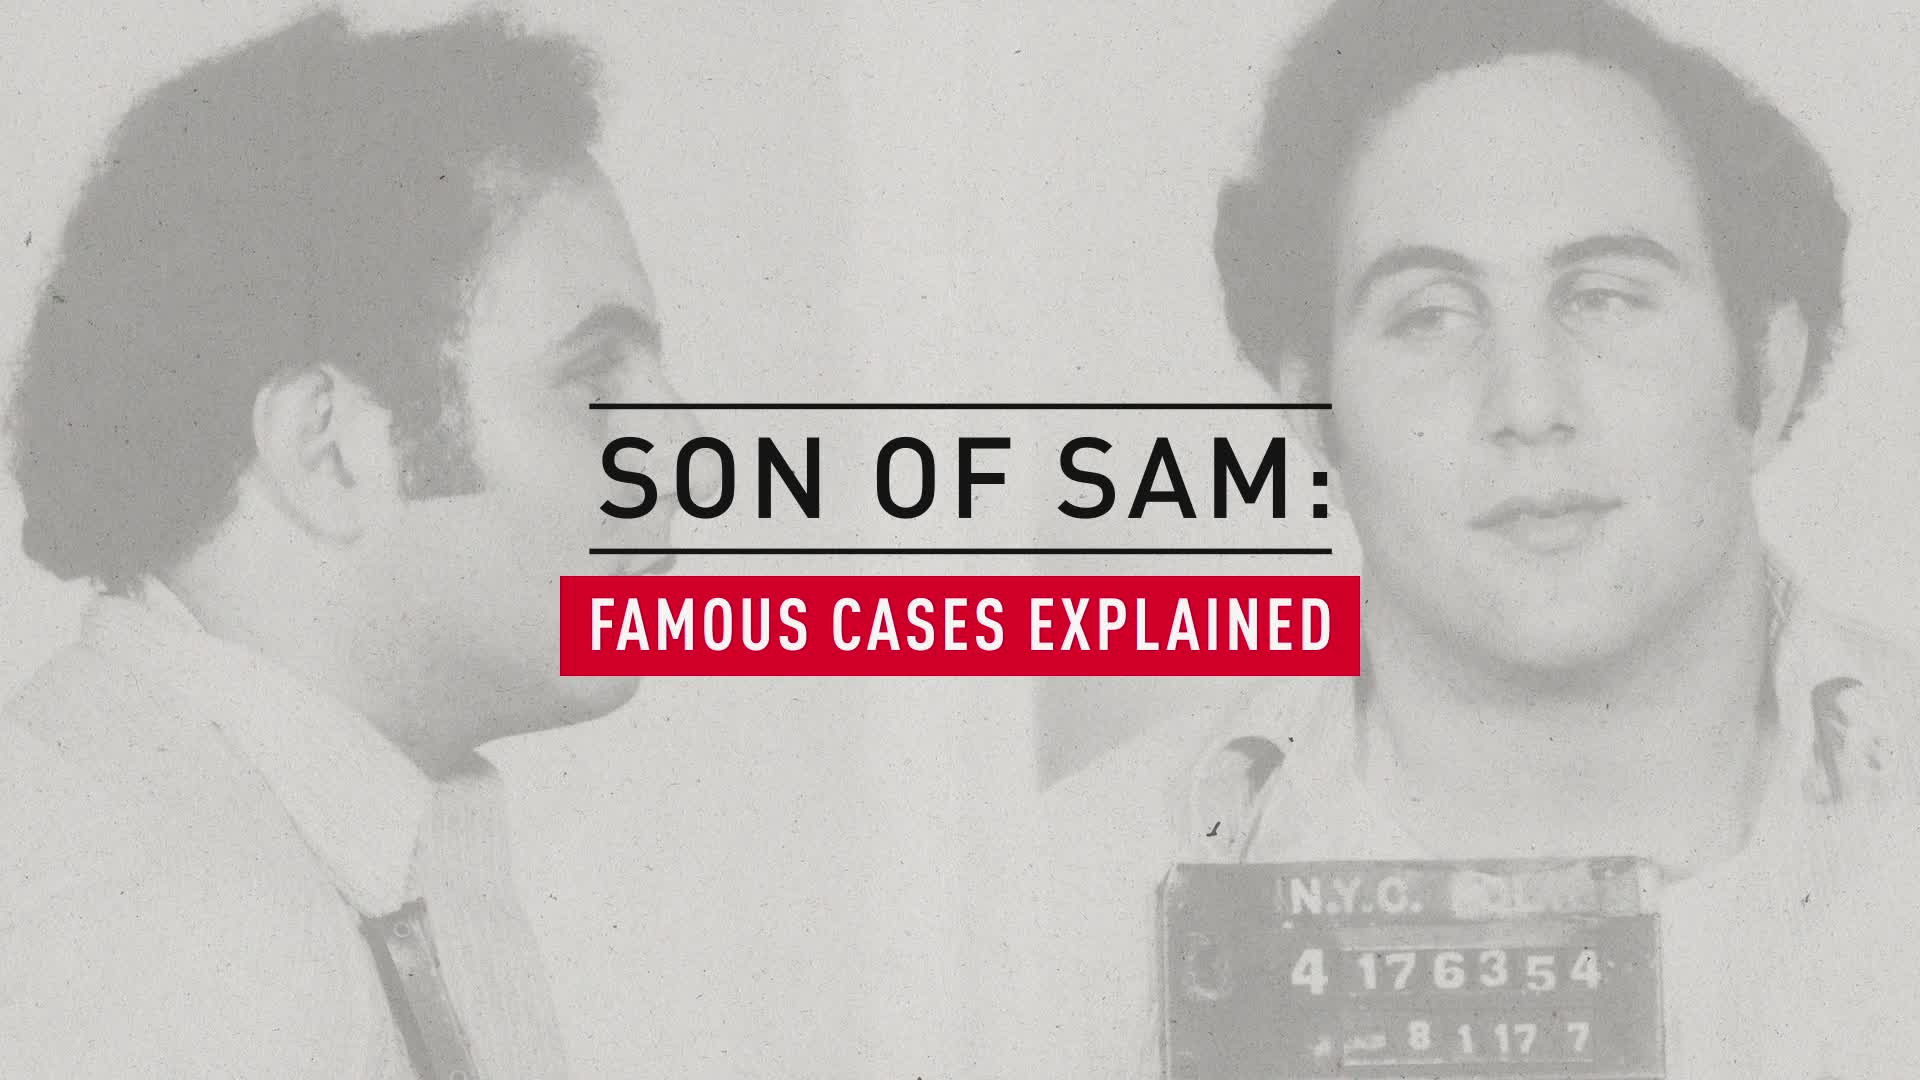 Son of Sam, Explained